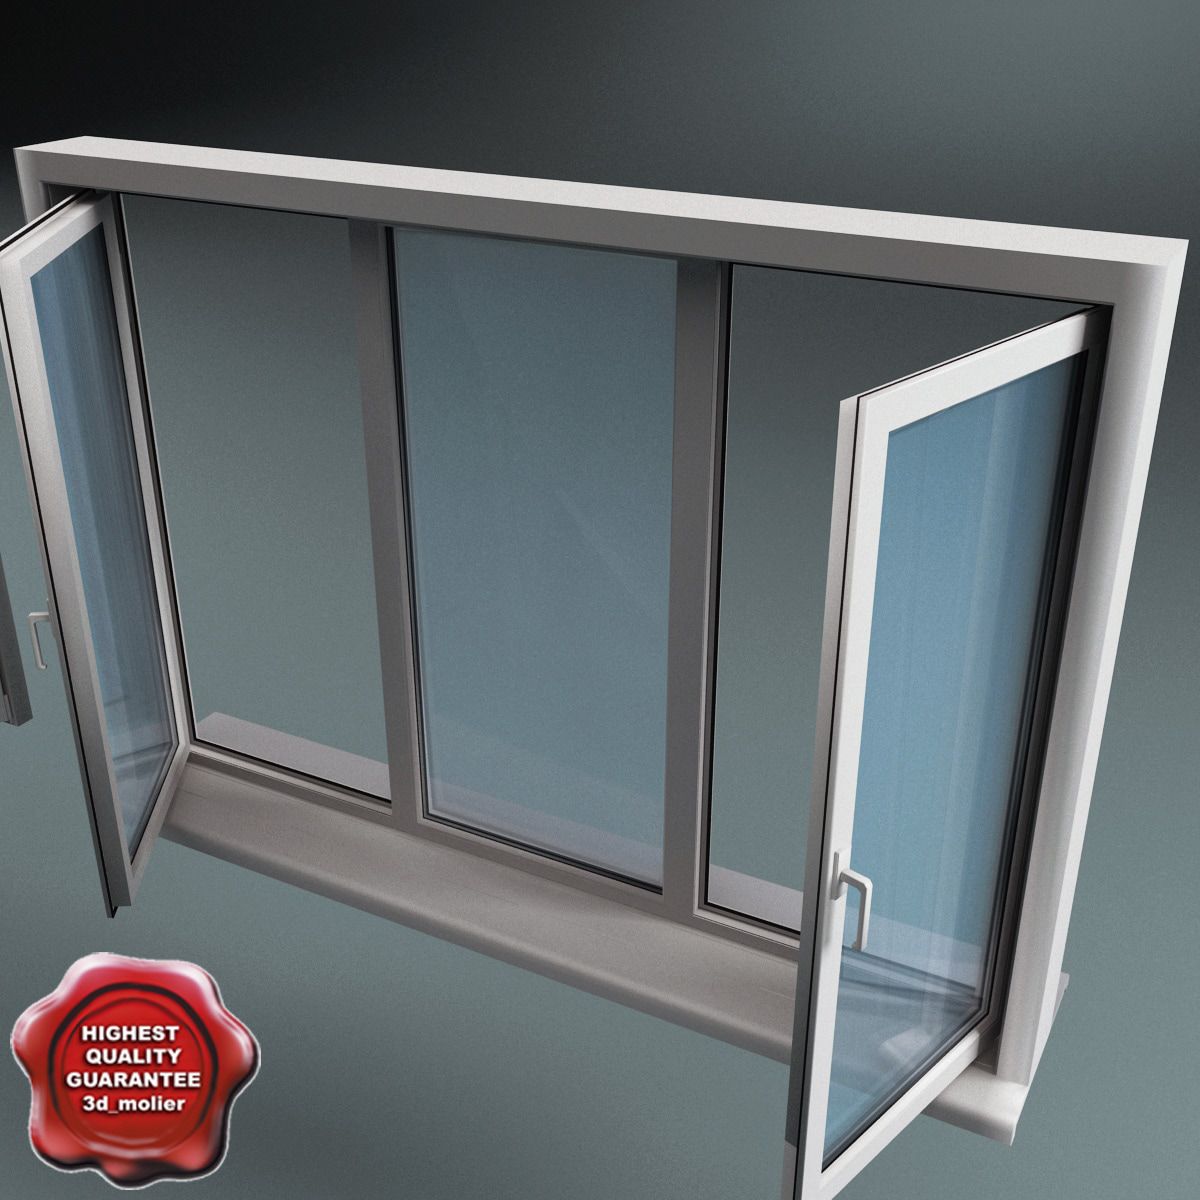 Plastic window v3 3d model for Window 3d model